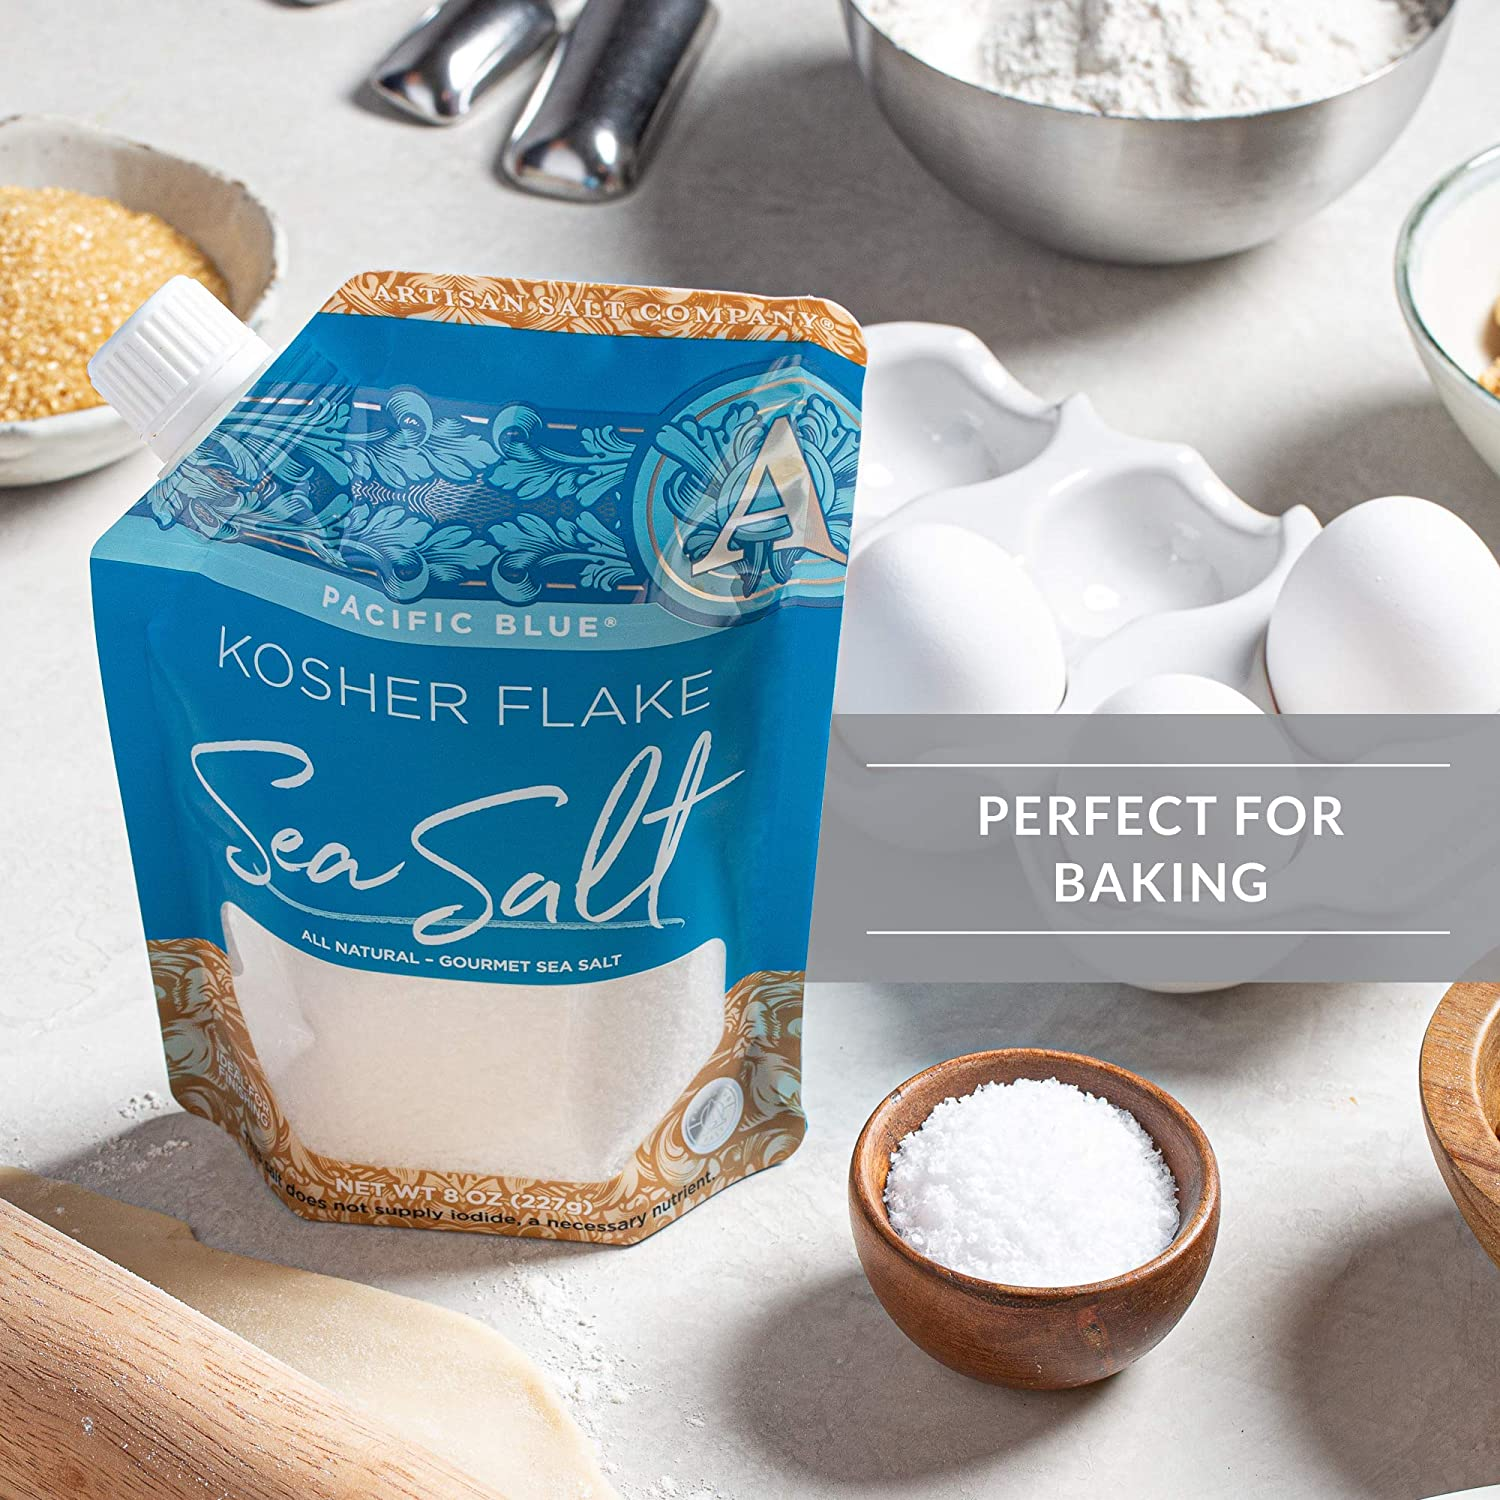 SaltWorks Pacific Blue Kosher Flake Sea Salt, Artisan Pour Spout Pouch, 8 Ounce : Grocery & Gourmet Food